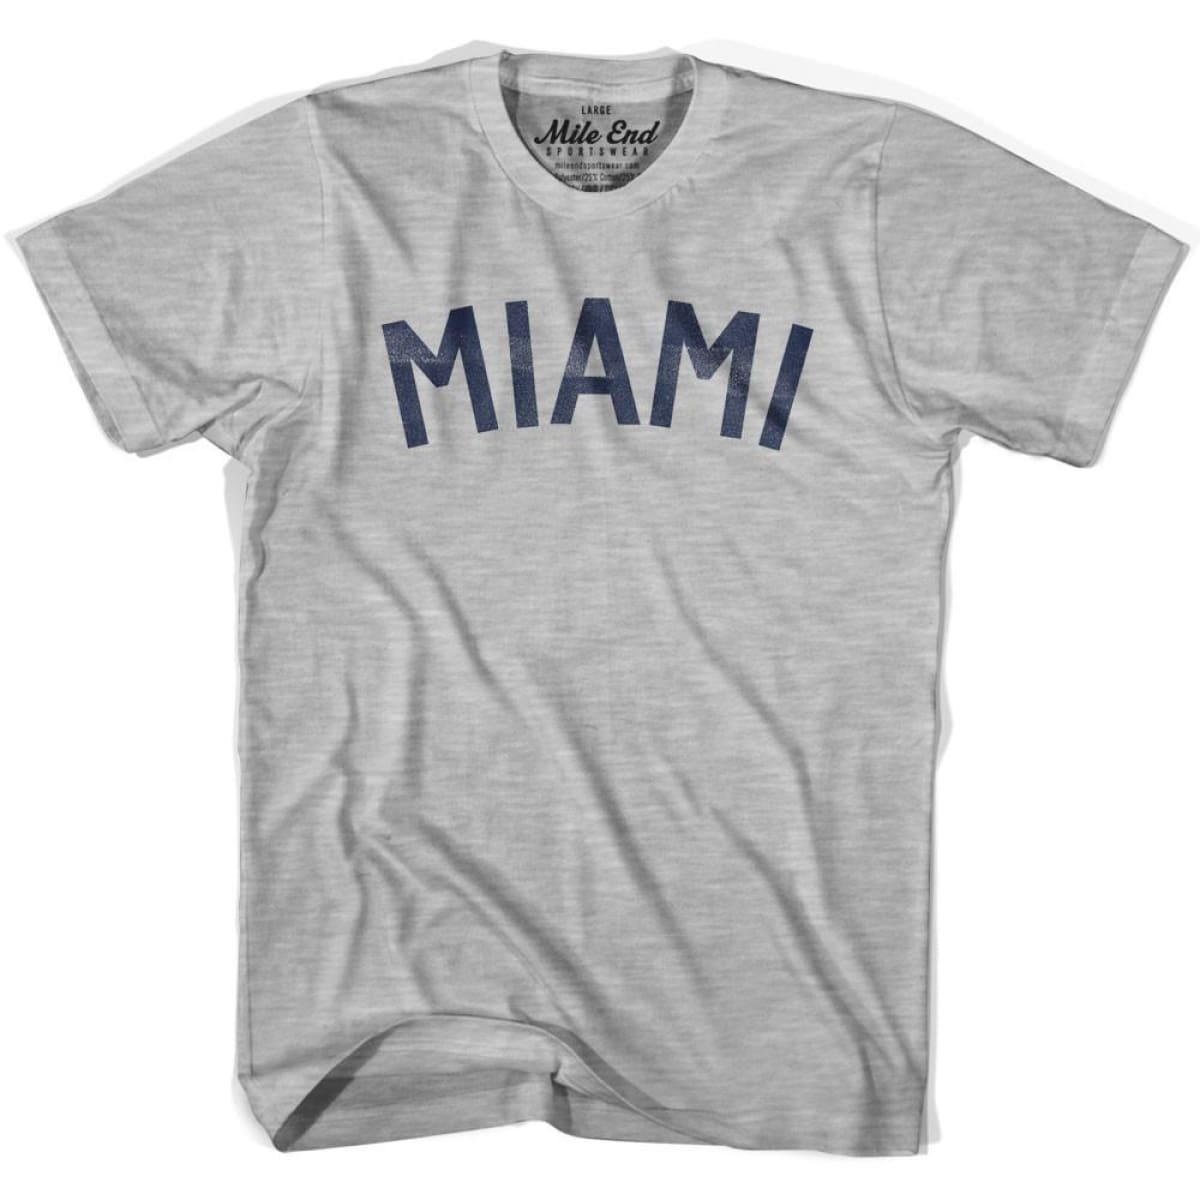 Miami City Vintage T-shirt - Grey Heather / Youth X-Small - Mile End City